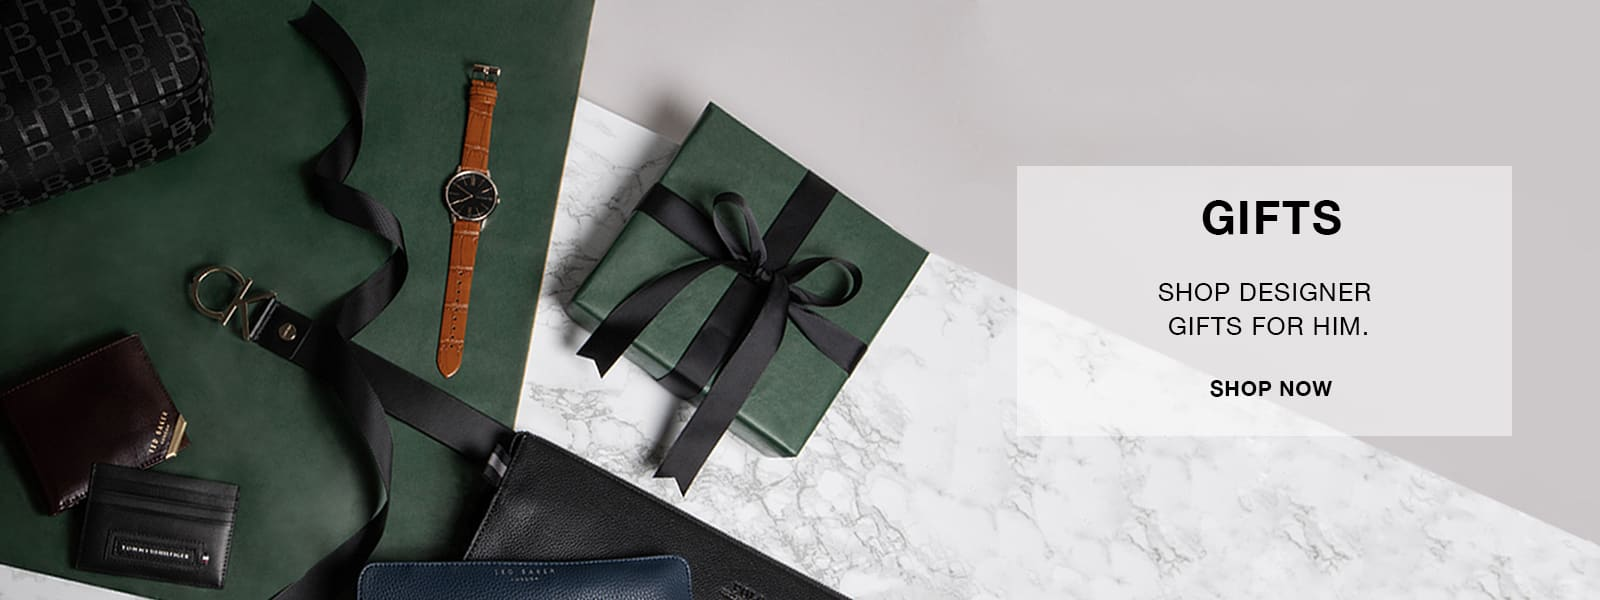 Gifts - Shop Designer Gifts for Him